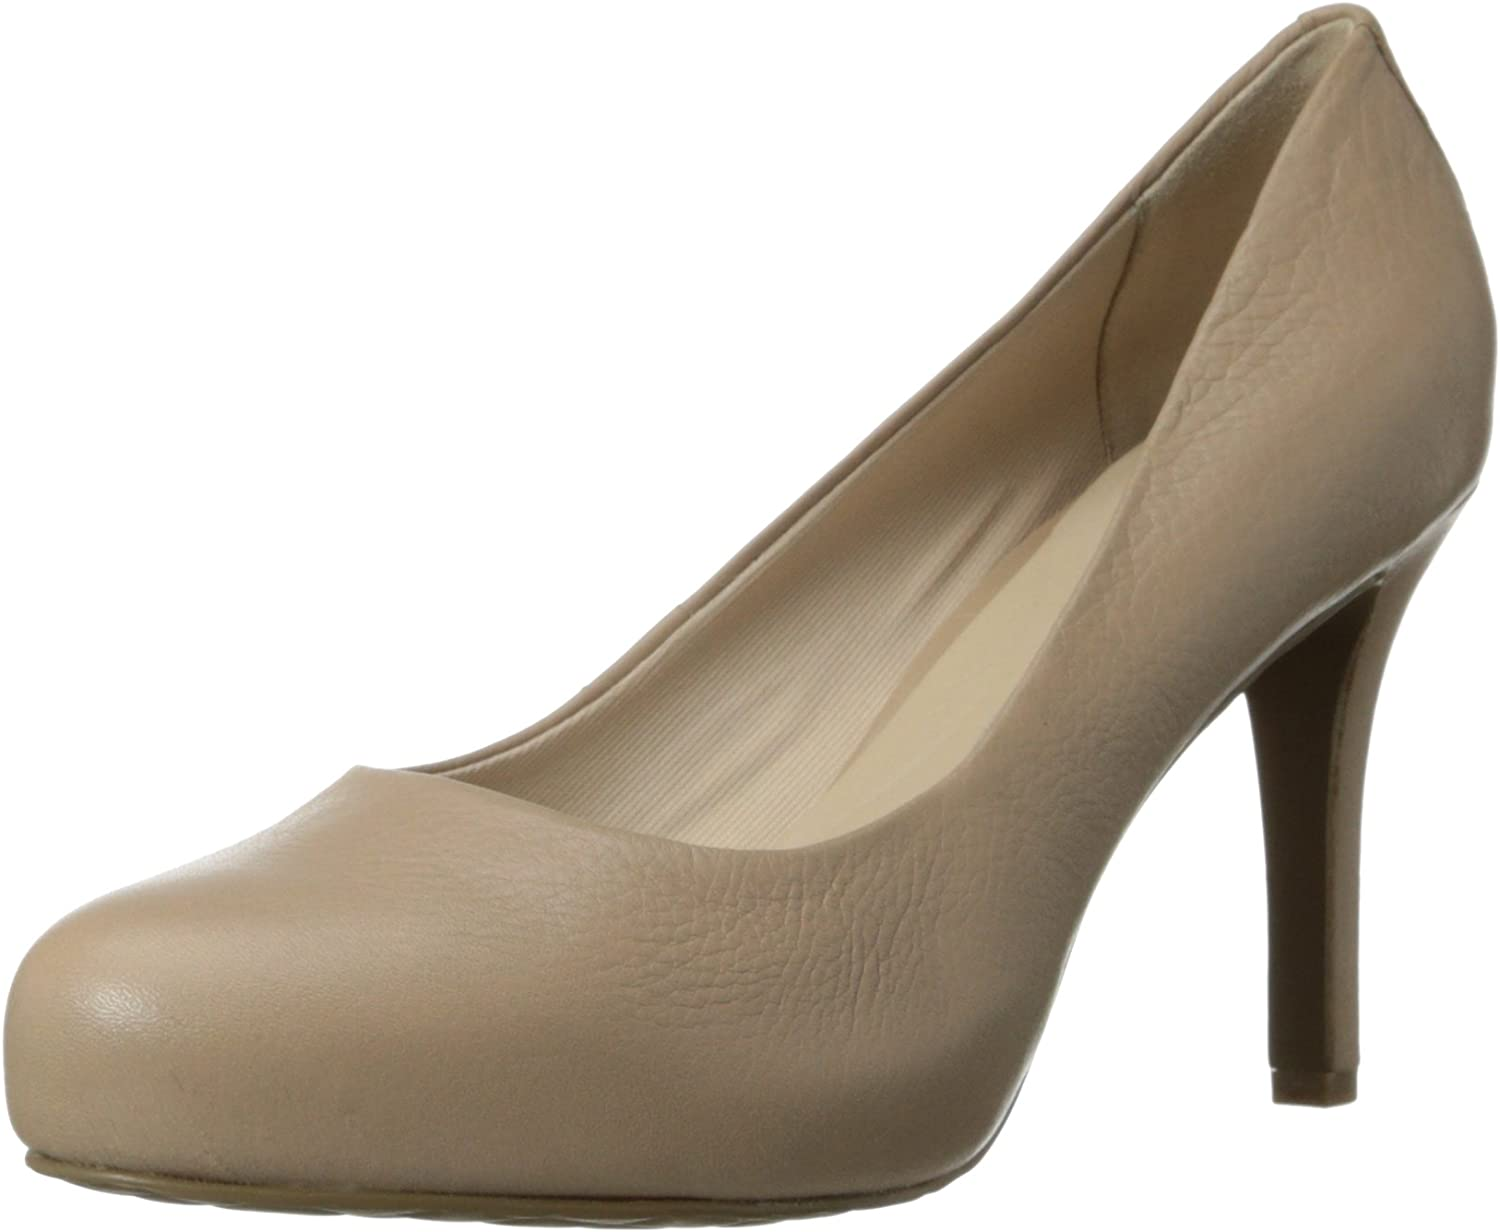 Sales of SALE items from new works Rockport Ranking TOP3 Women's Sto7h95 Pump Plain